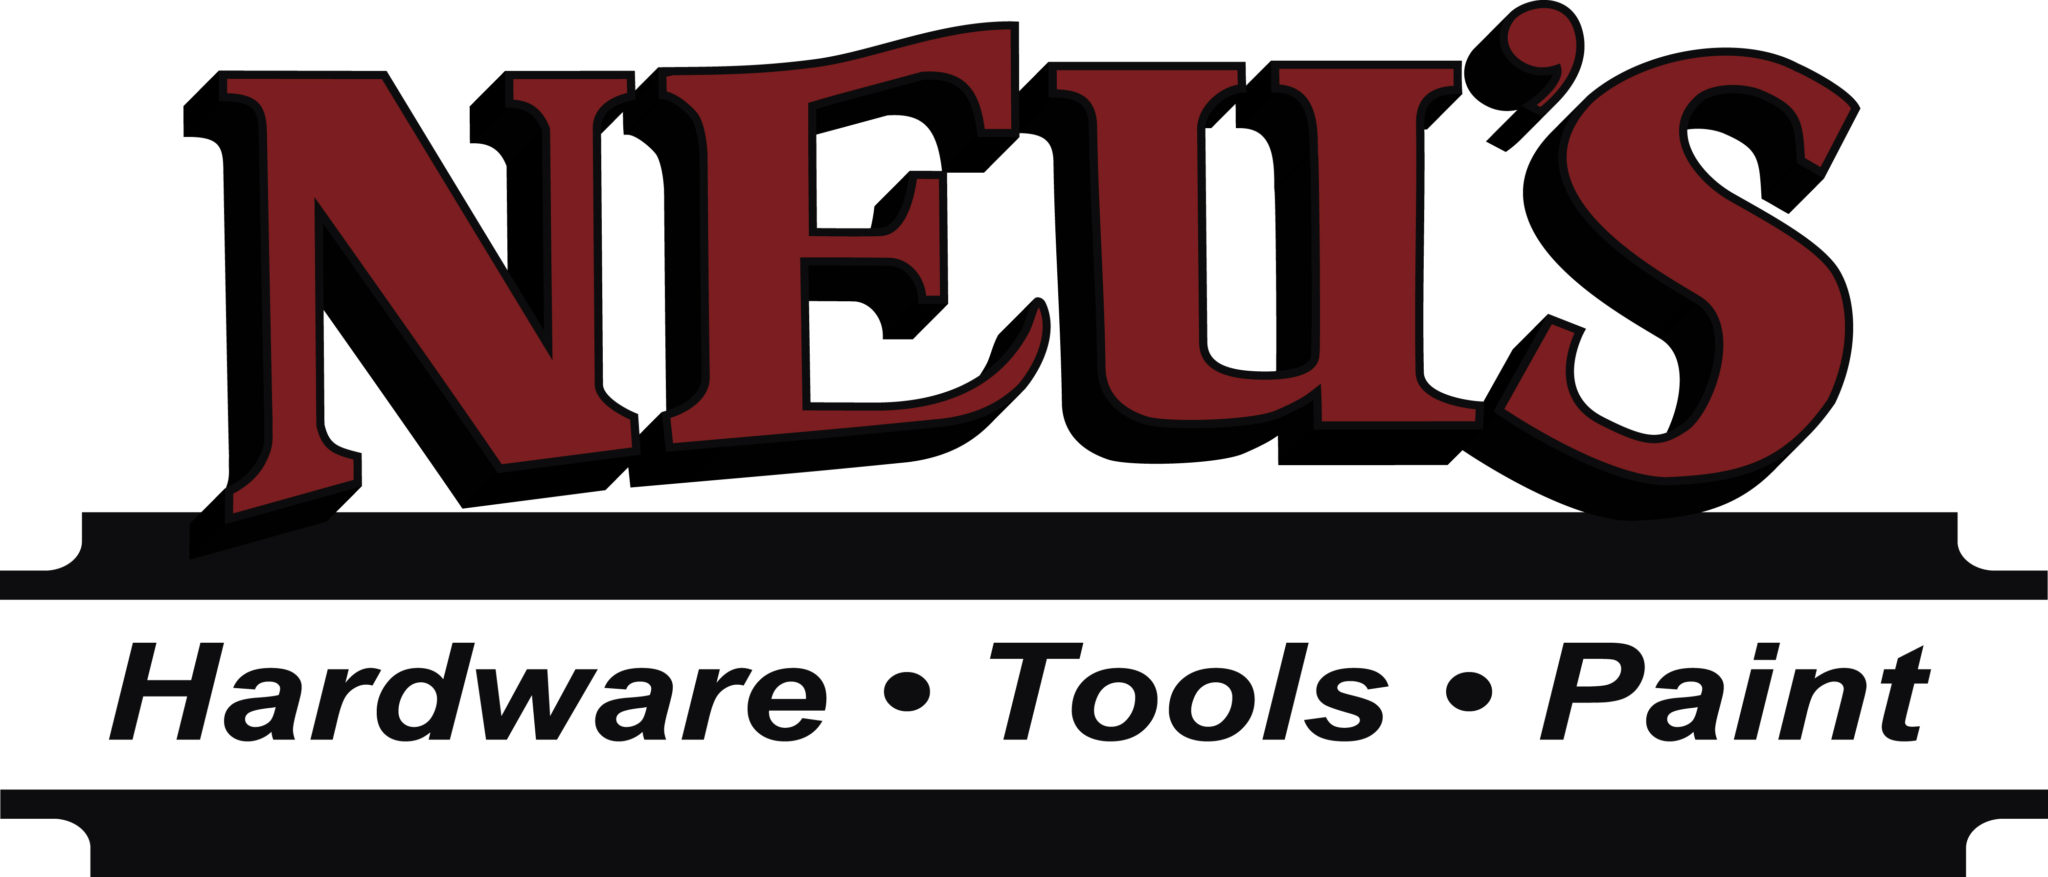 Products - Neu's Hardware Tools Paint, Brands, Gift Cards